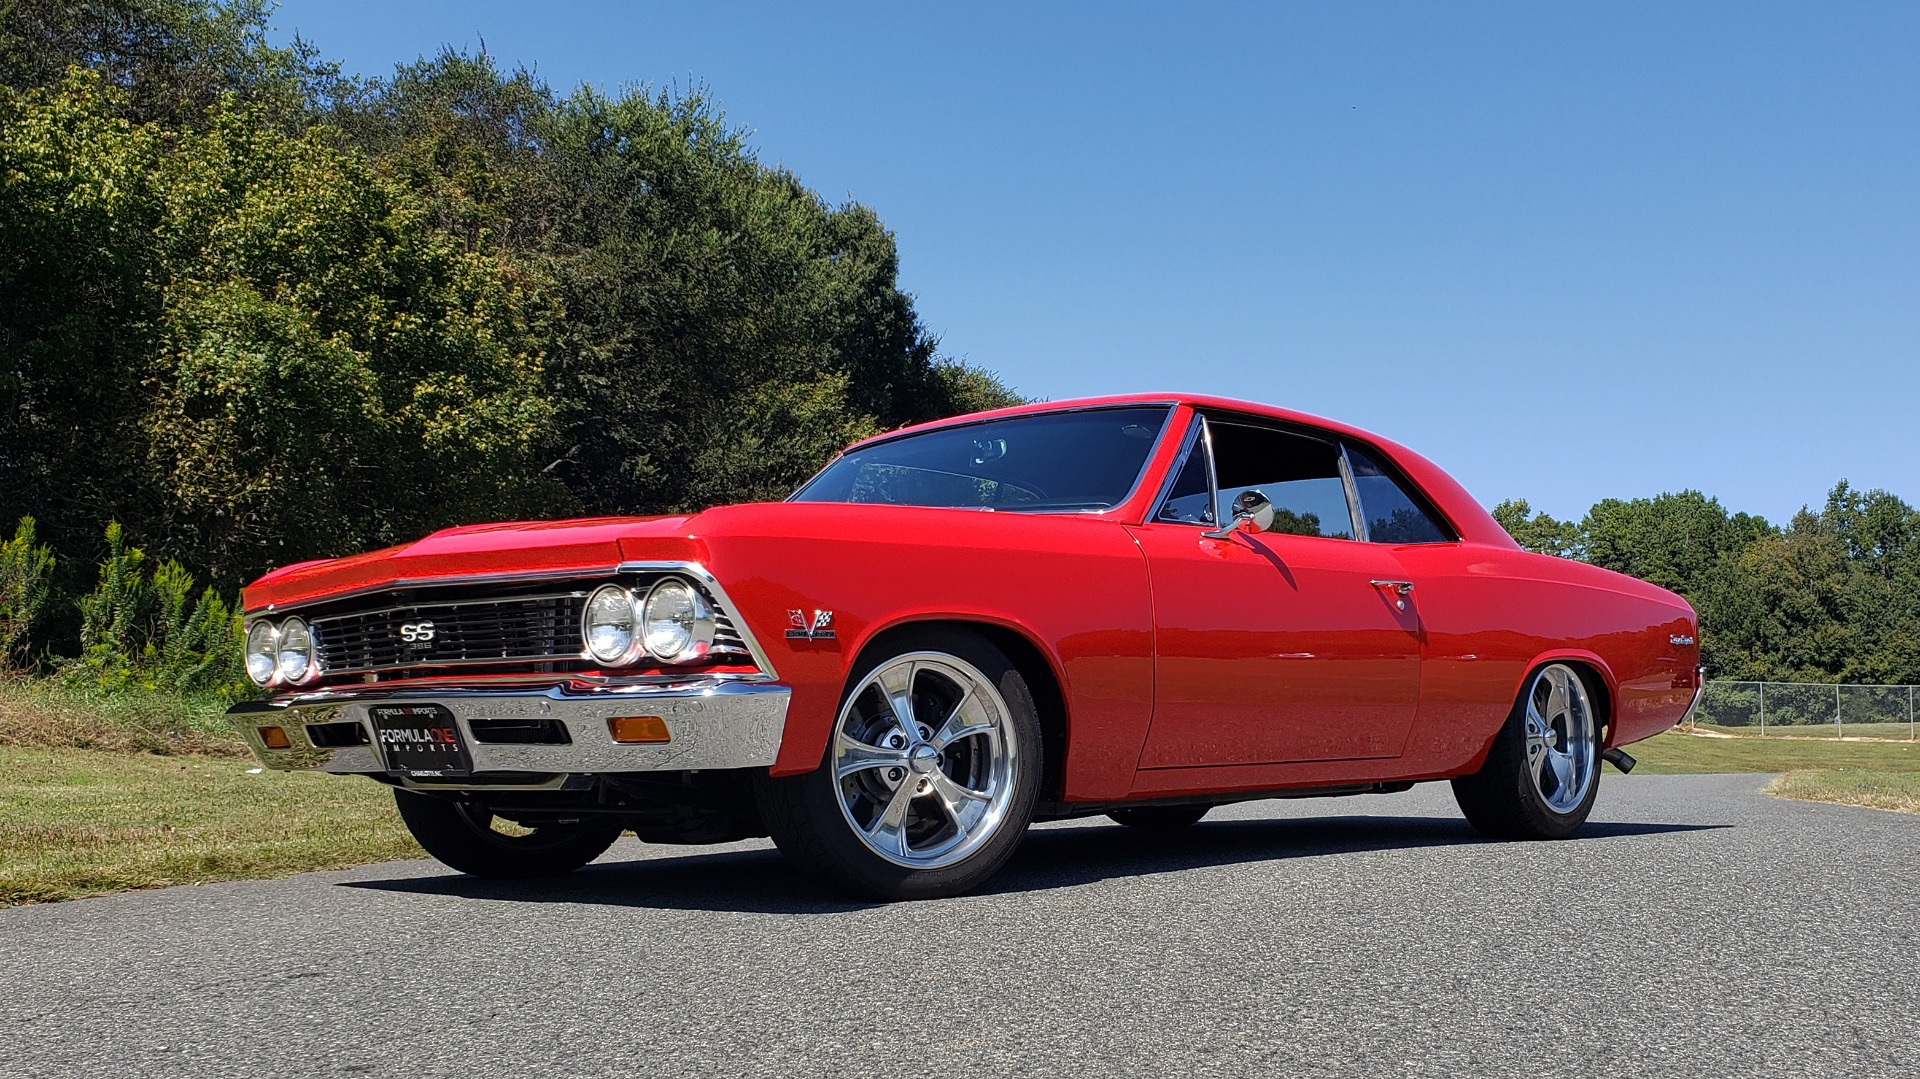 Used 1966 Chevrolet CHEVELLE SS 396 CUSTOM RESTO-MOD / 4-SPEED MANUAL / 12-BOLT REAR for sale $79,999 at Formula Imports in Charlotte NC 28227 2